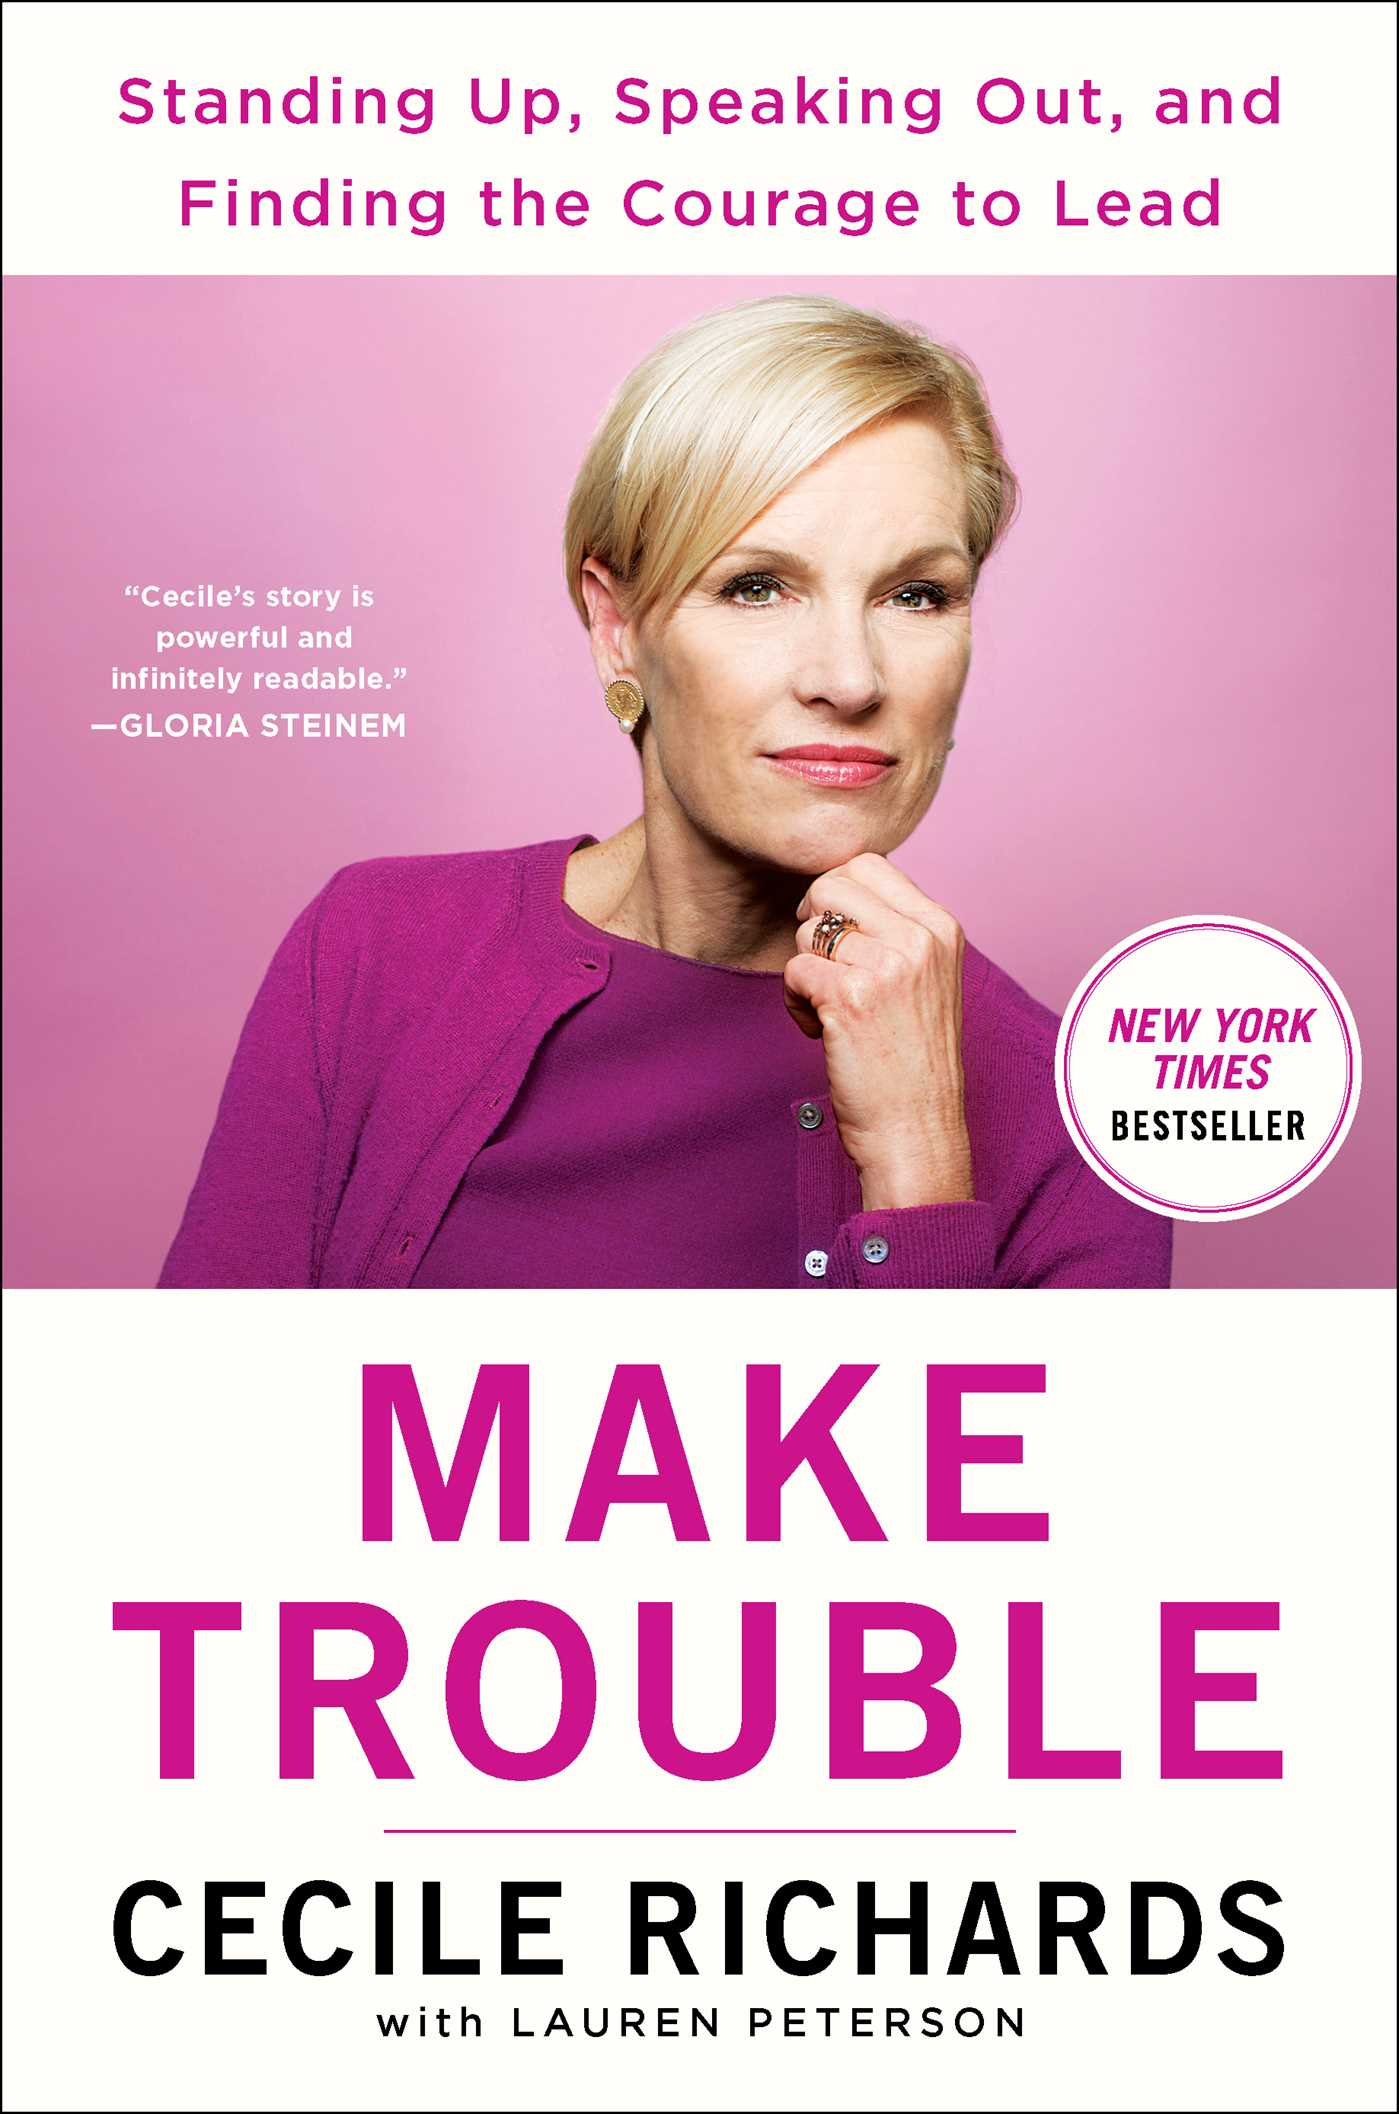 Make Trouble [EBOOK] Standing Up, Speaking Out, and Finding the Courage to Lead--My Life Story